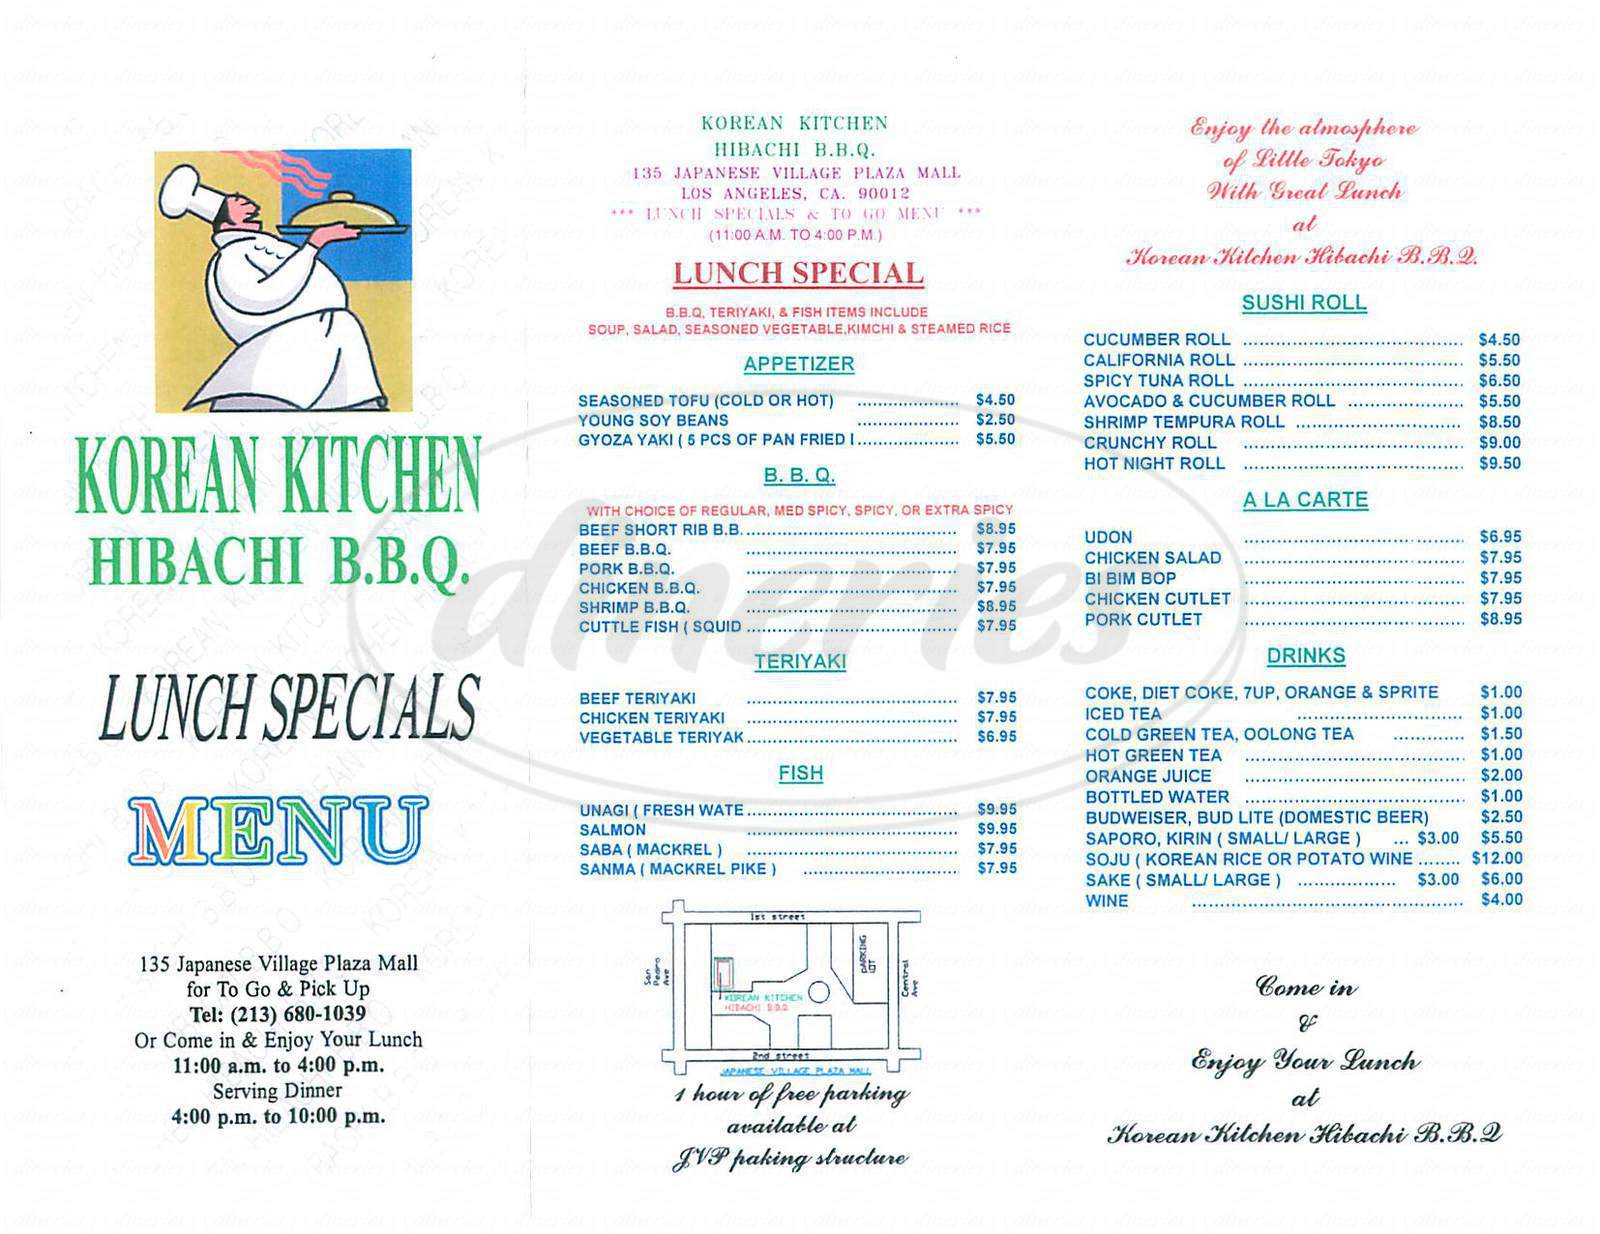 menu for Korean Kitchen Hibachi Barbeque